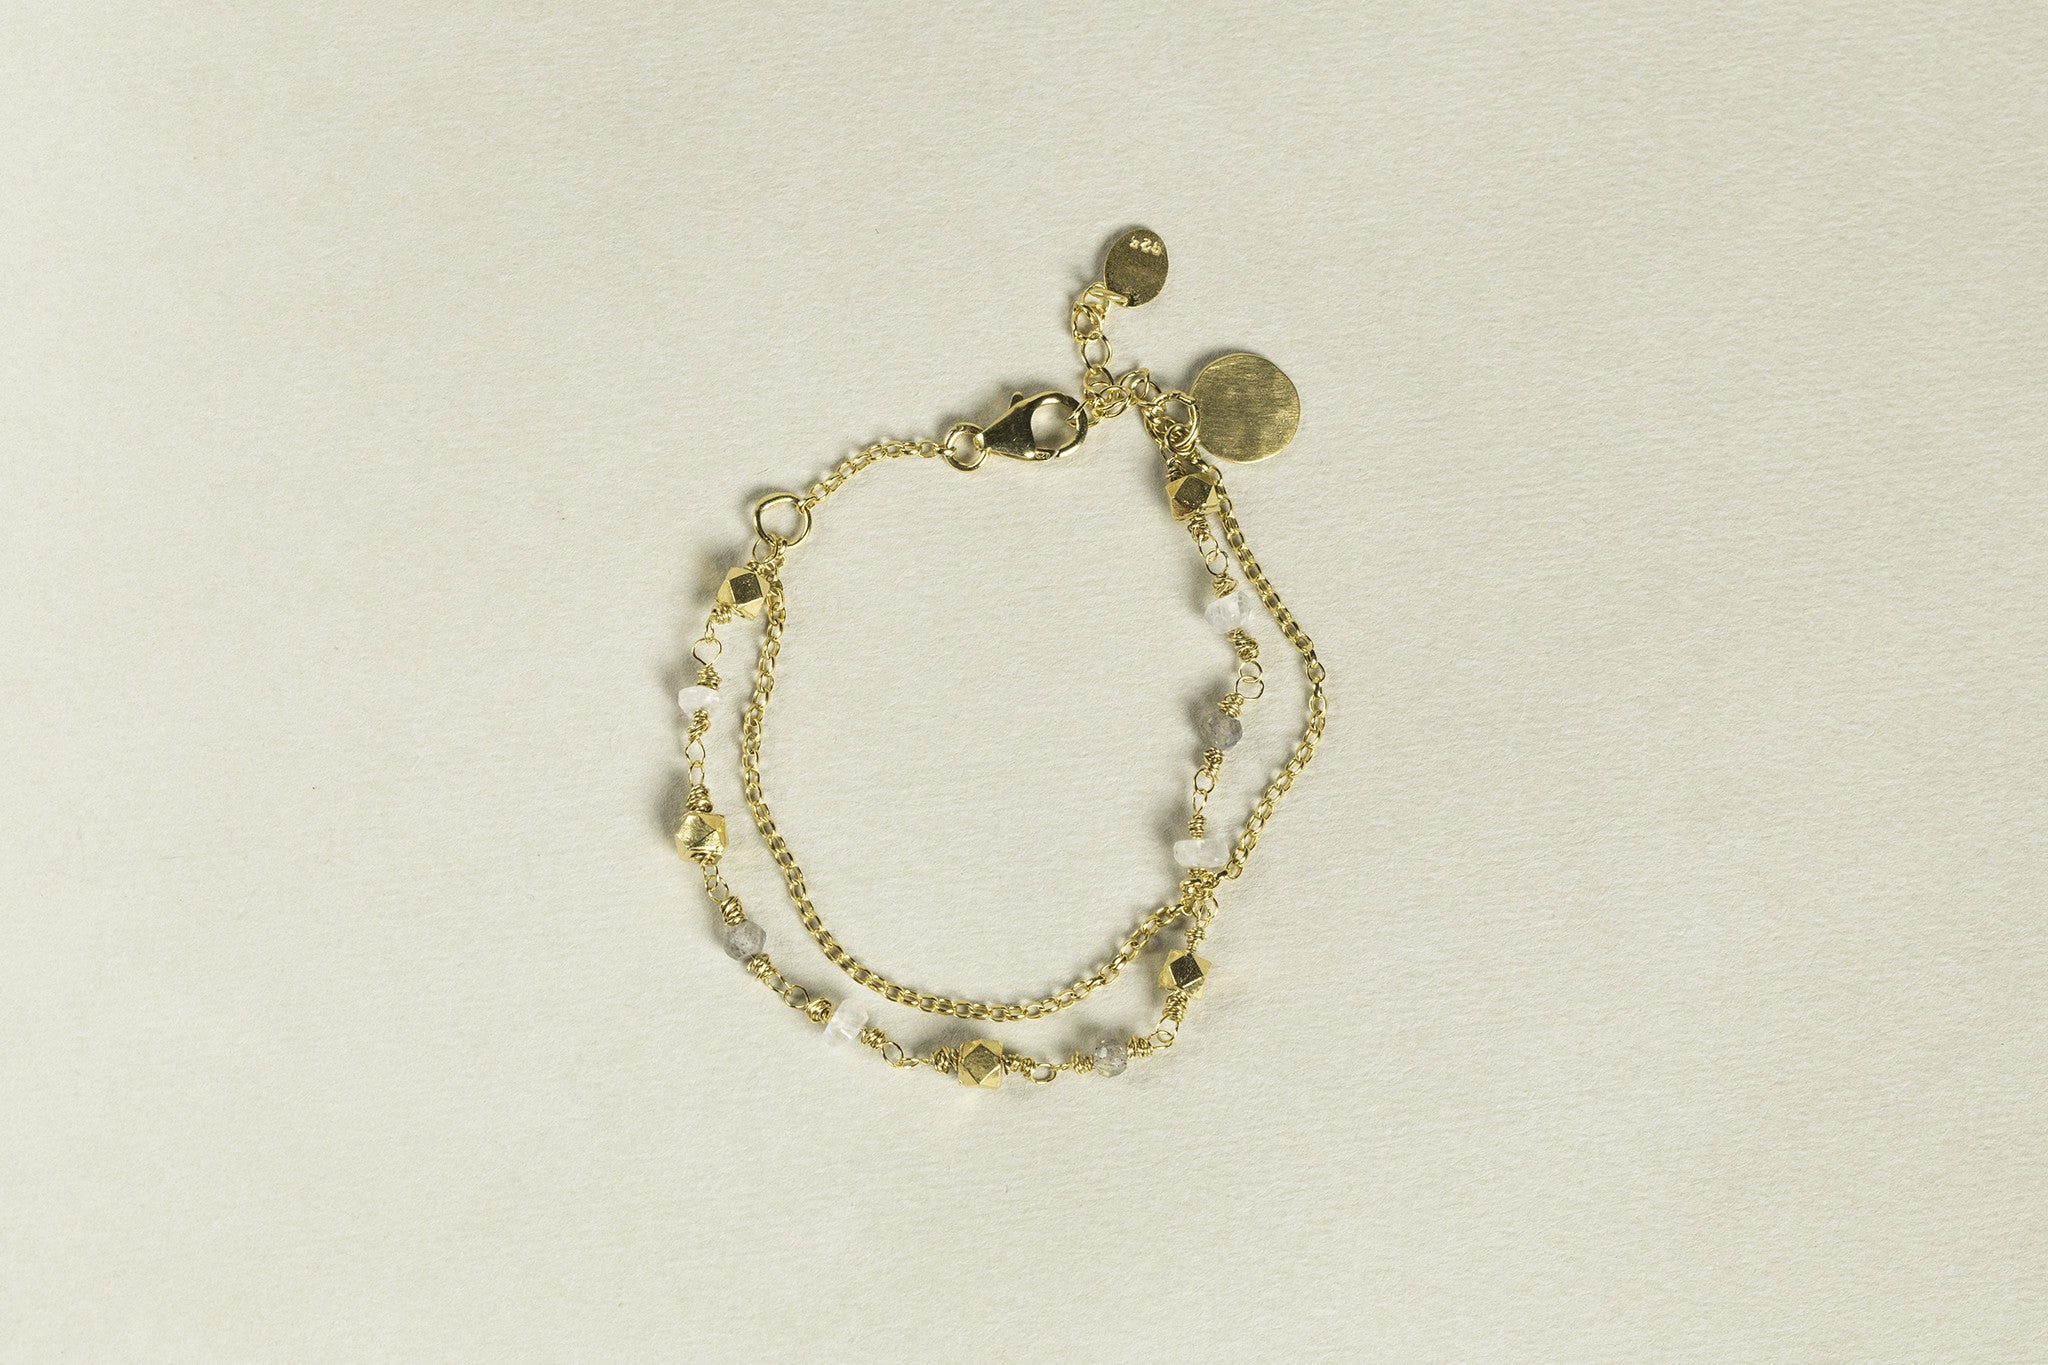 Labradorite/Moonstone Bead and Nugget Bracelet